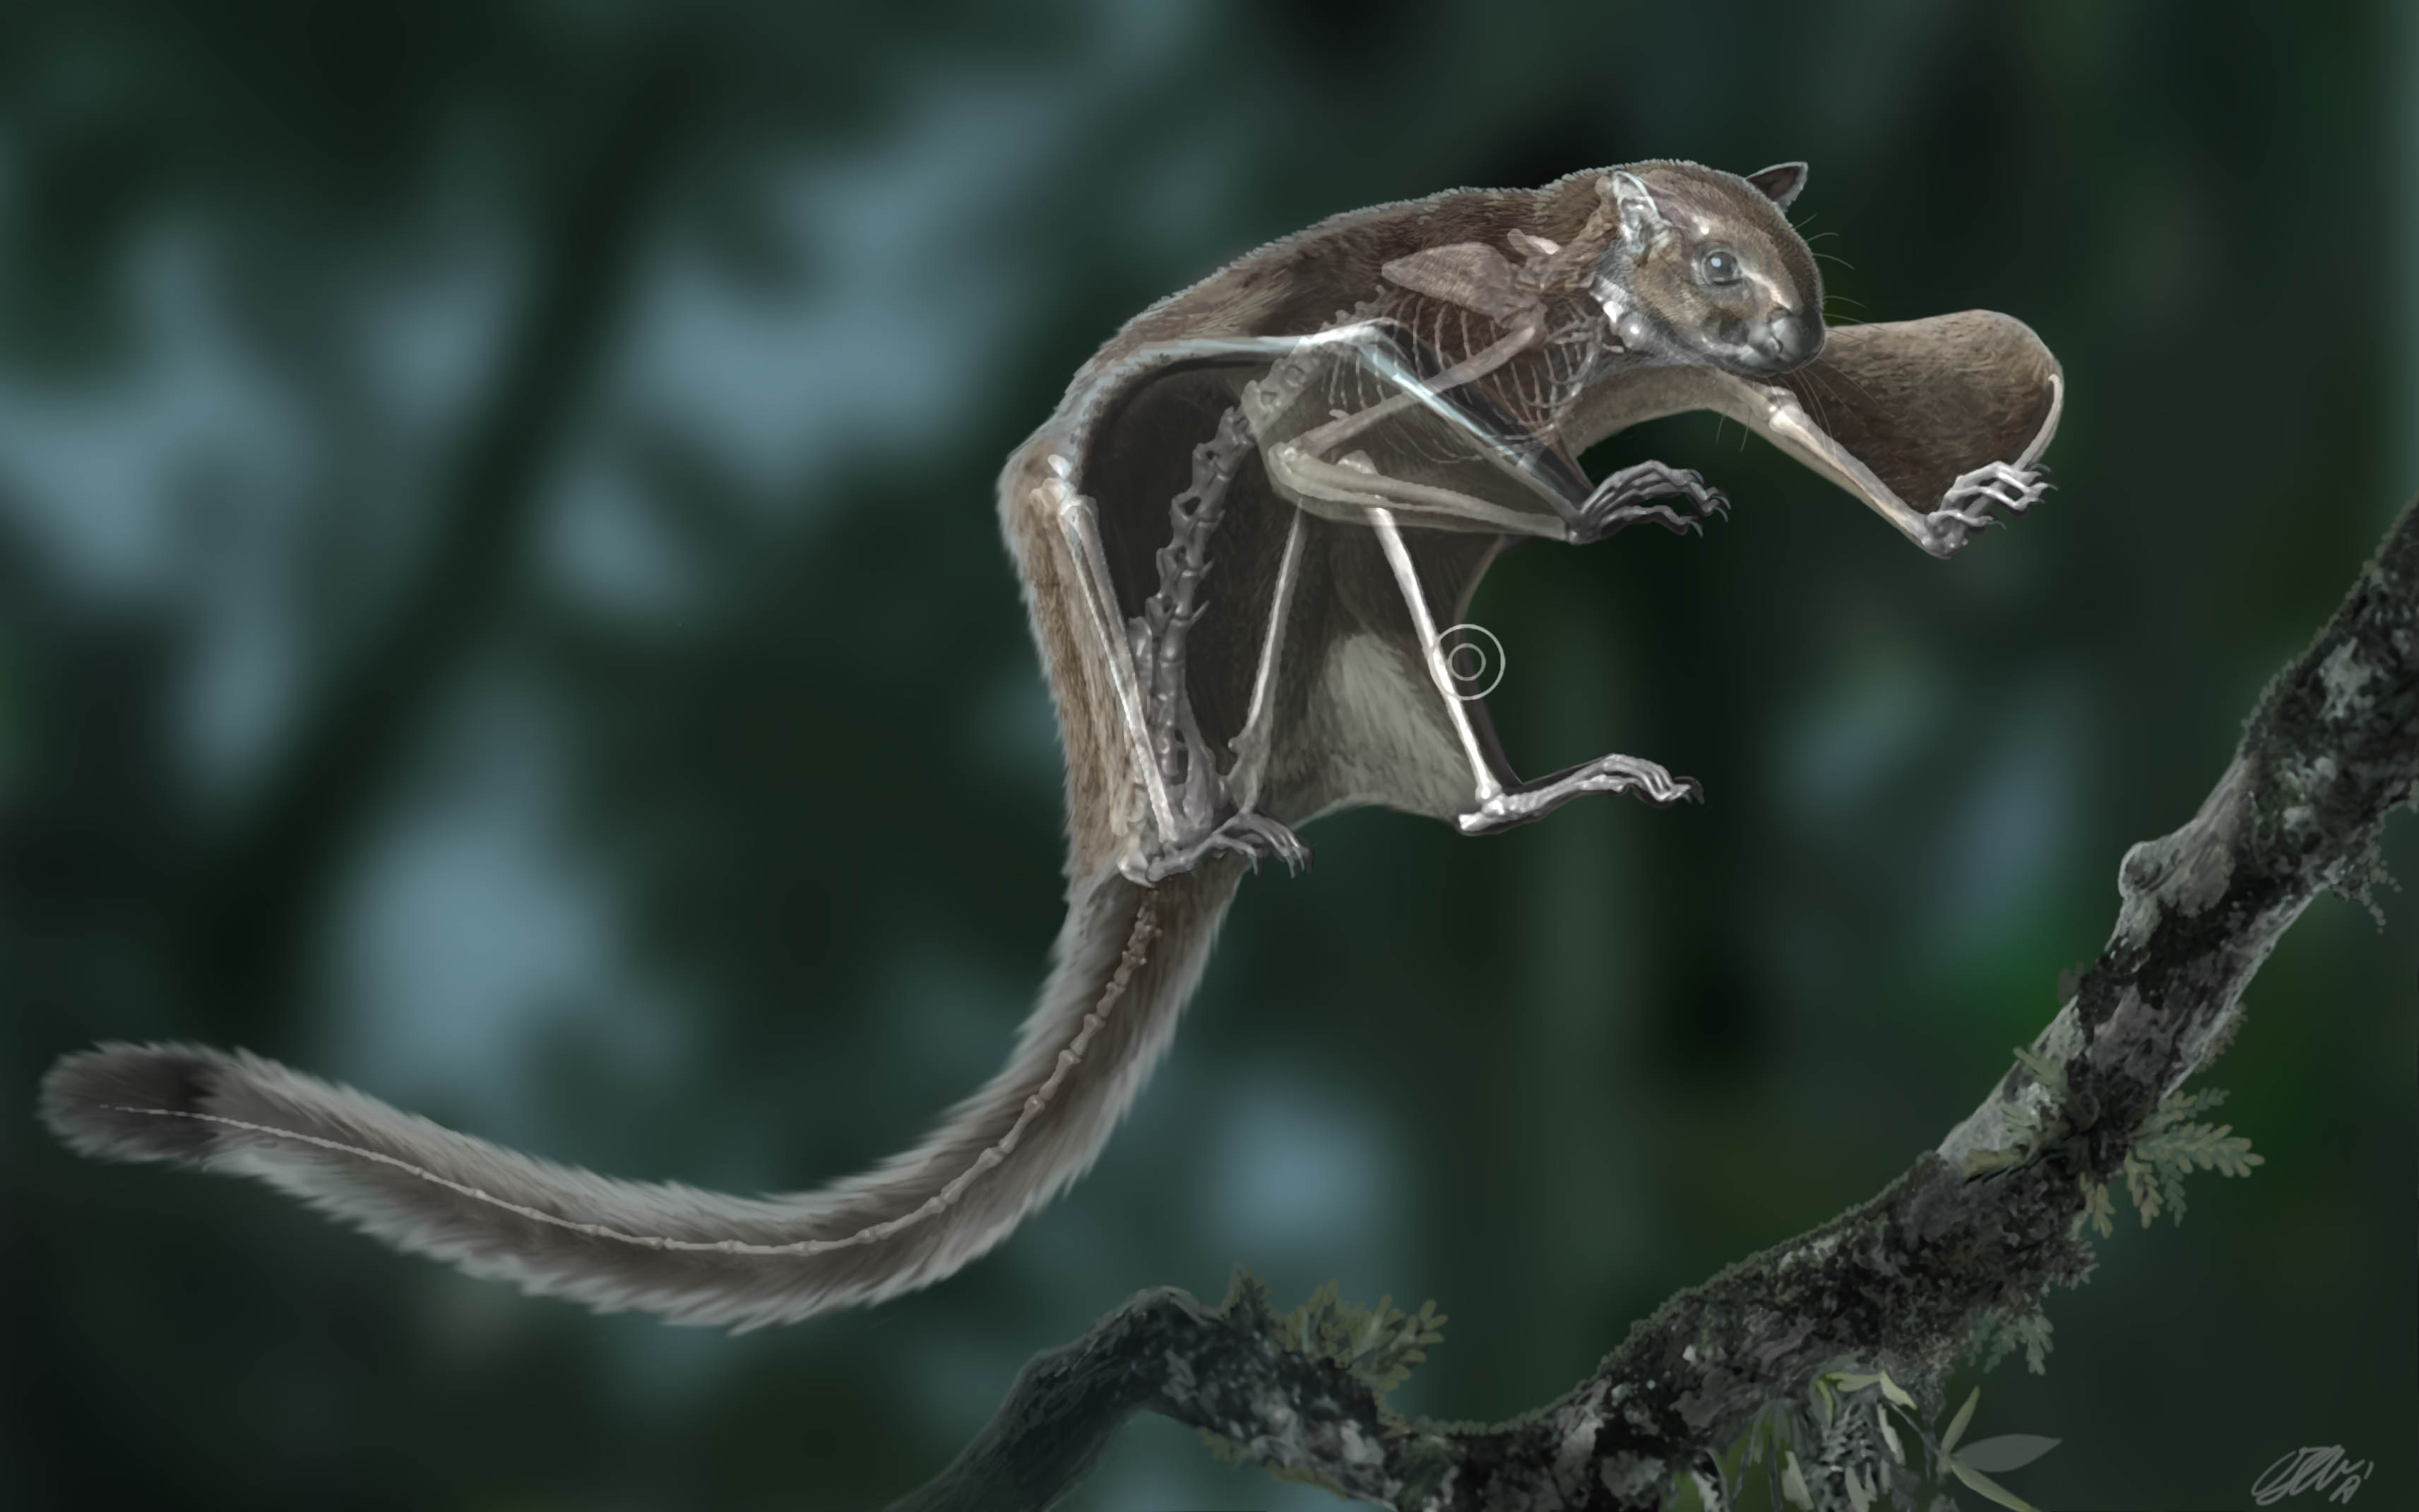 Flying squirrel - Miopetaurista - semitransparent showing the skeleton overlaid with tissues